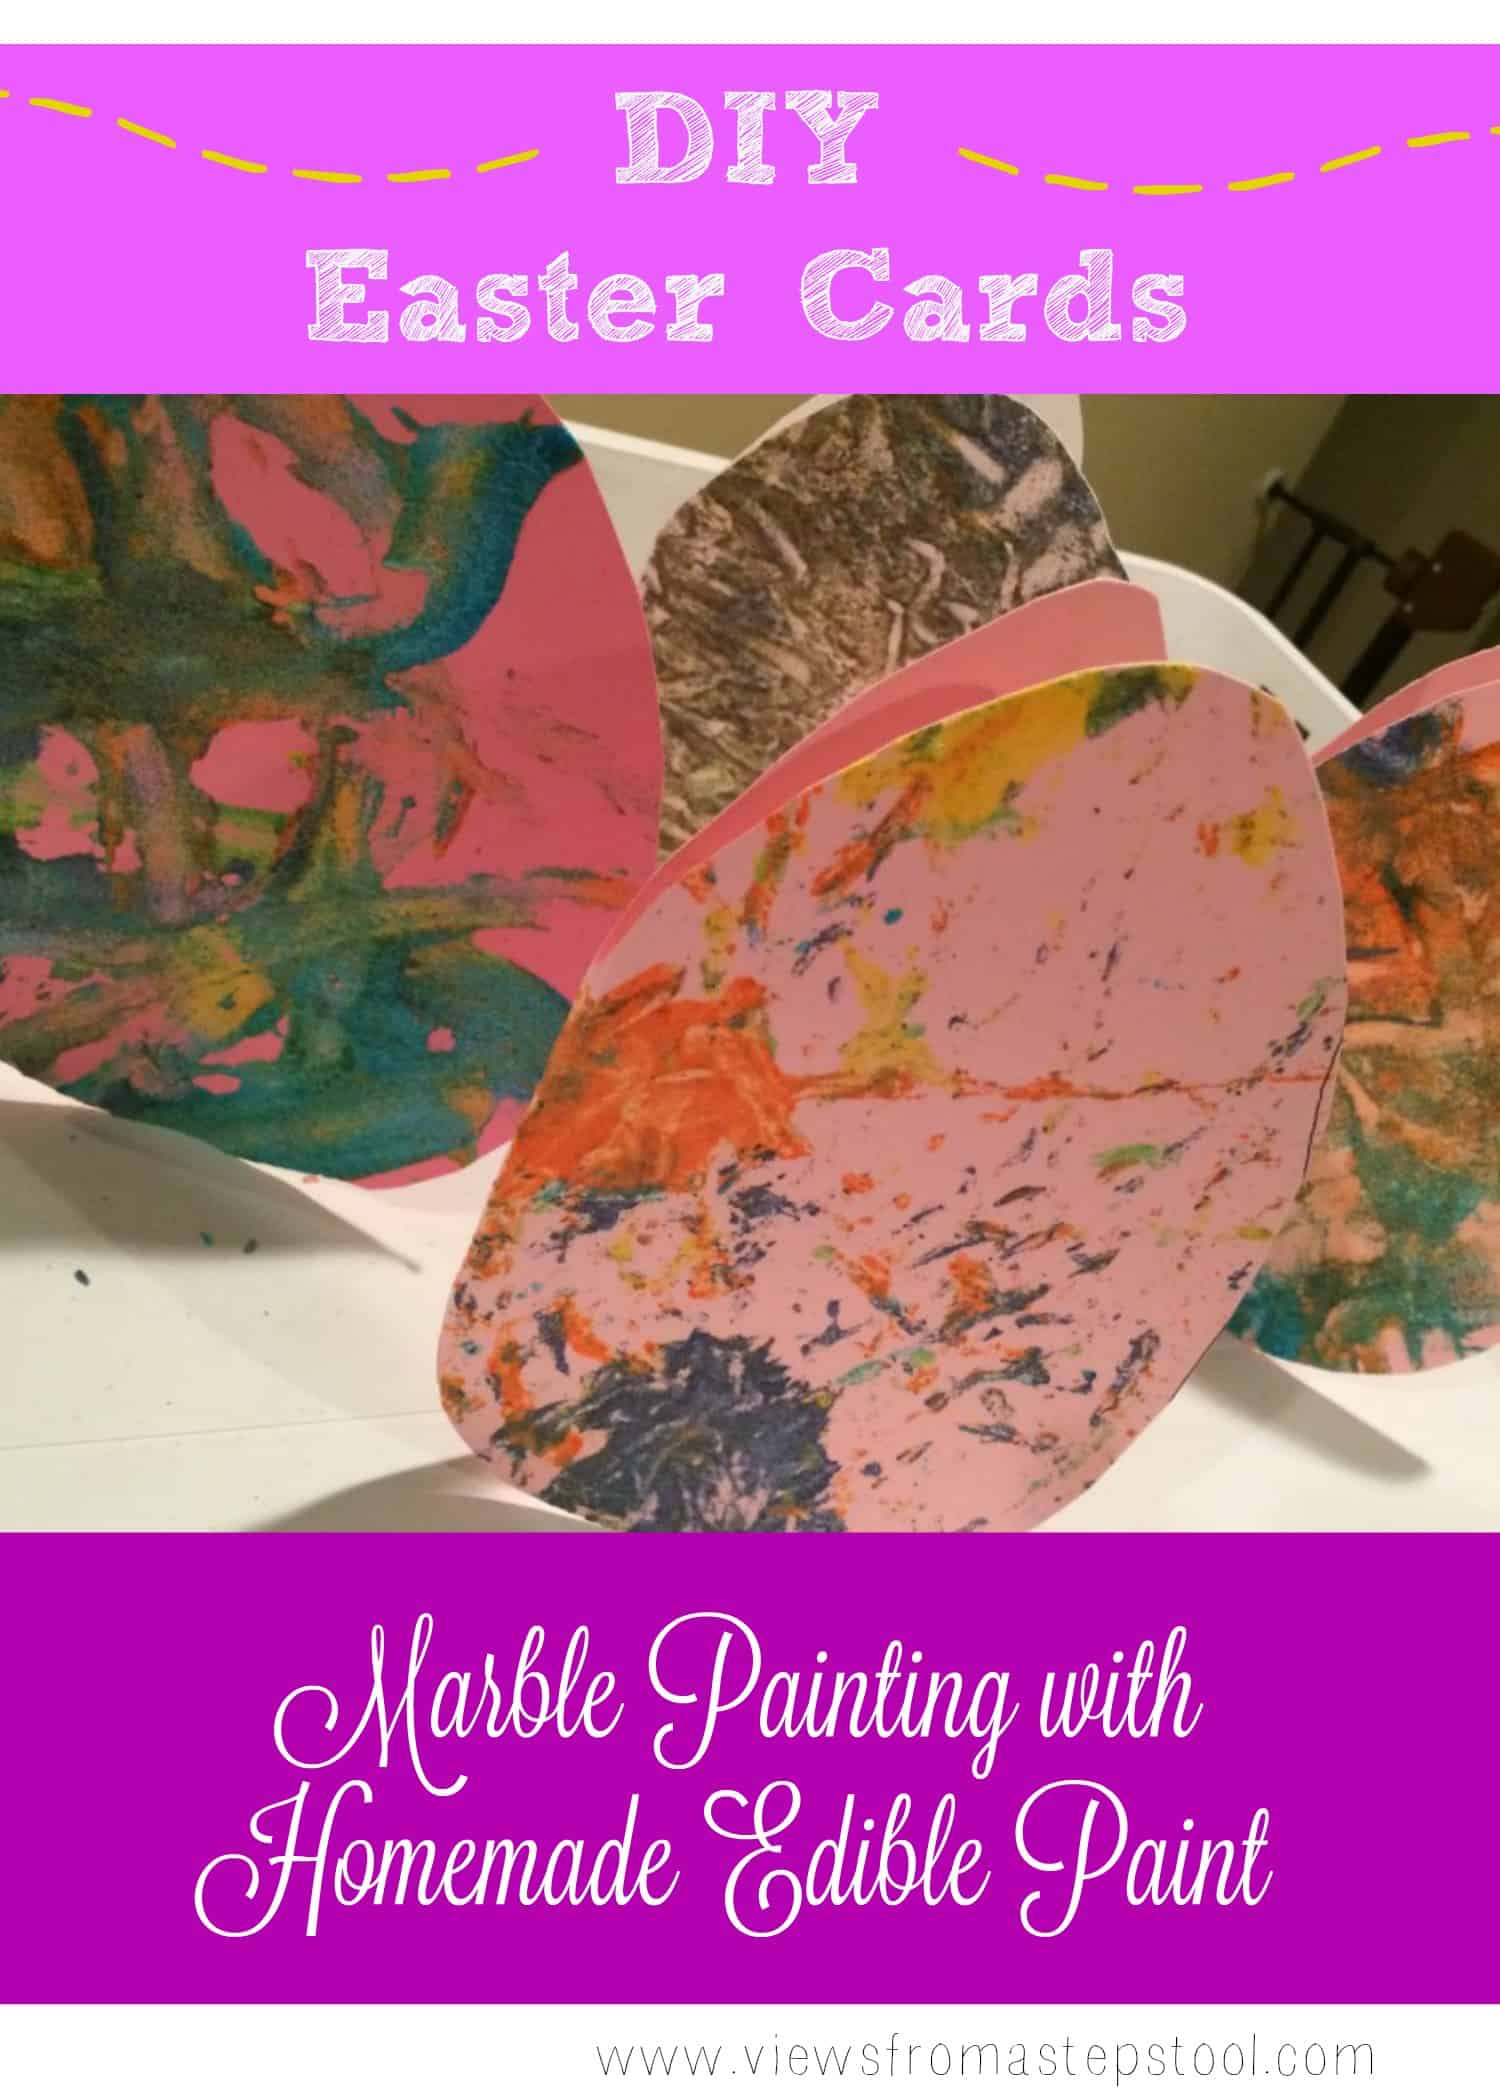 Check out how we made these DIY Easter cards baby friendly with homemade, edible paint!